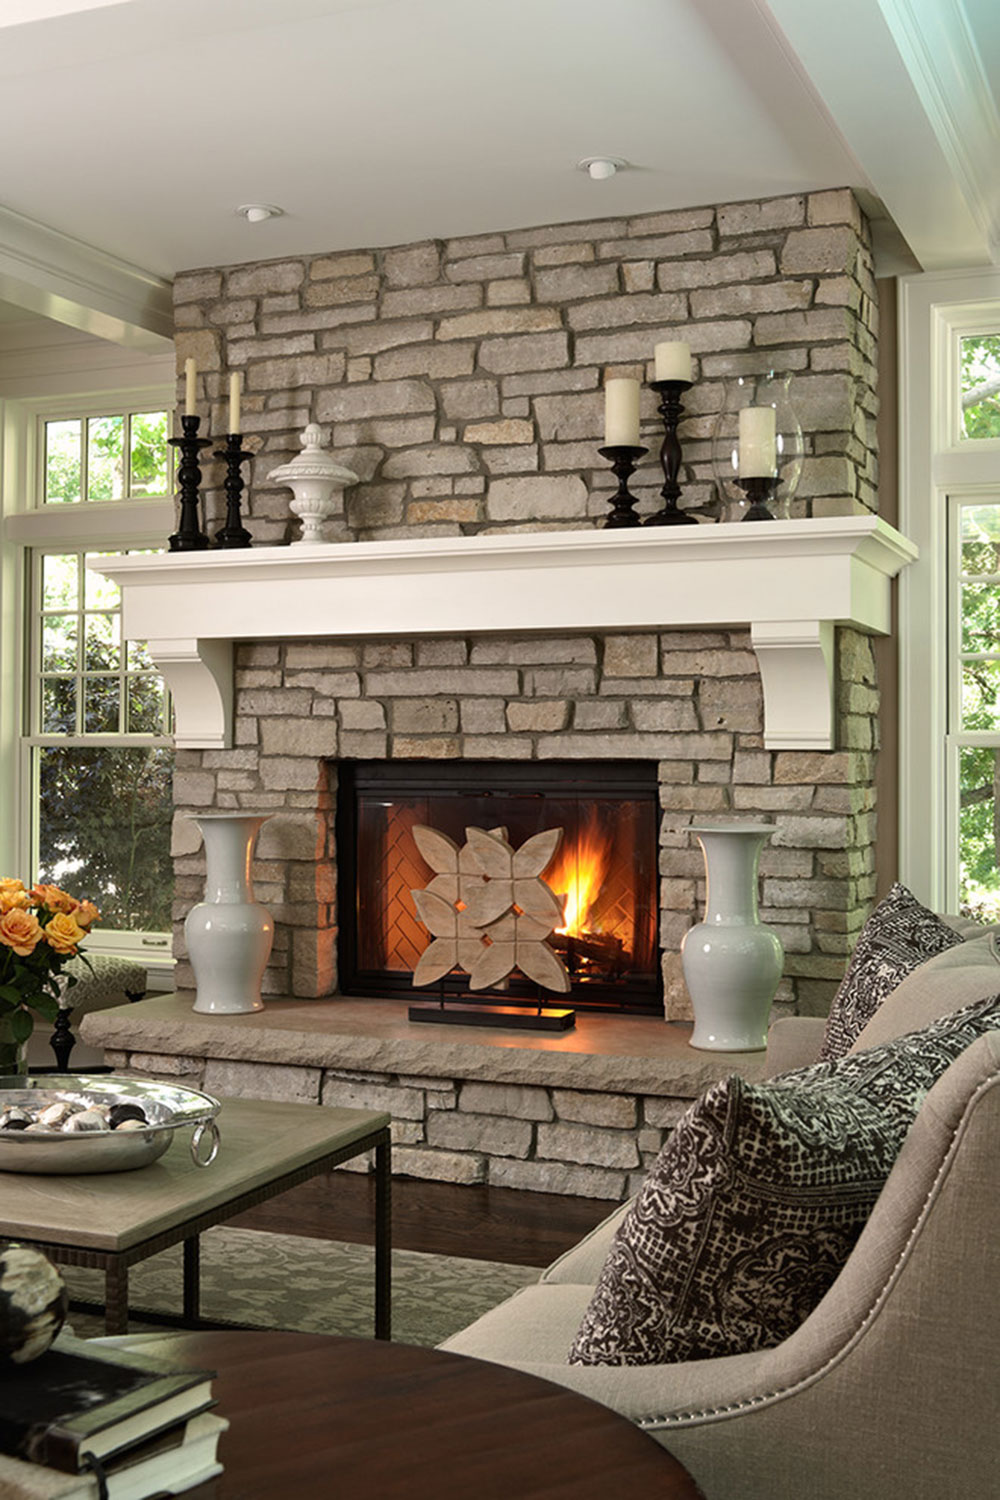 Fireplace cladding decoration ideas for a cozy home 3 fireplace cladding decoration ideas for a cozy home